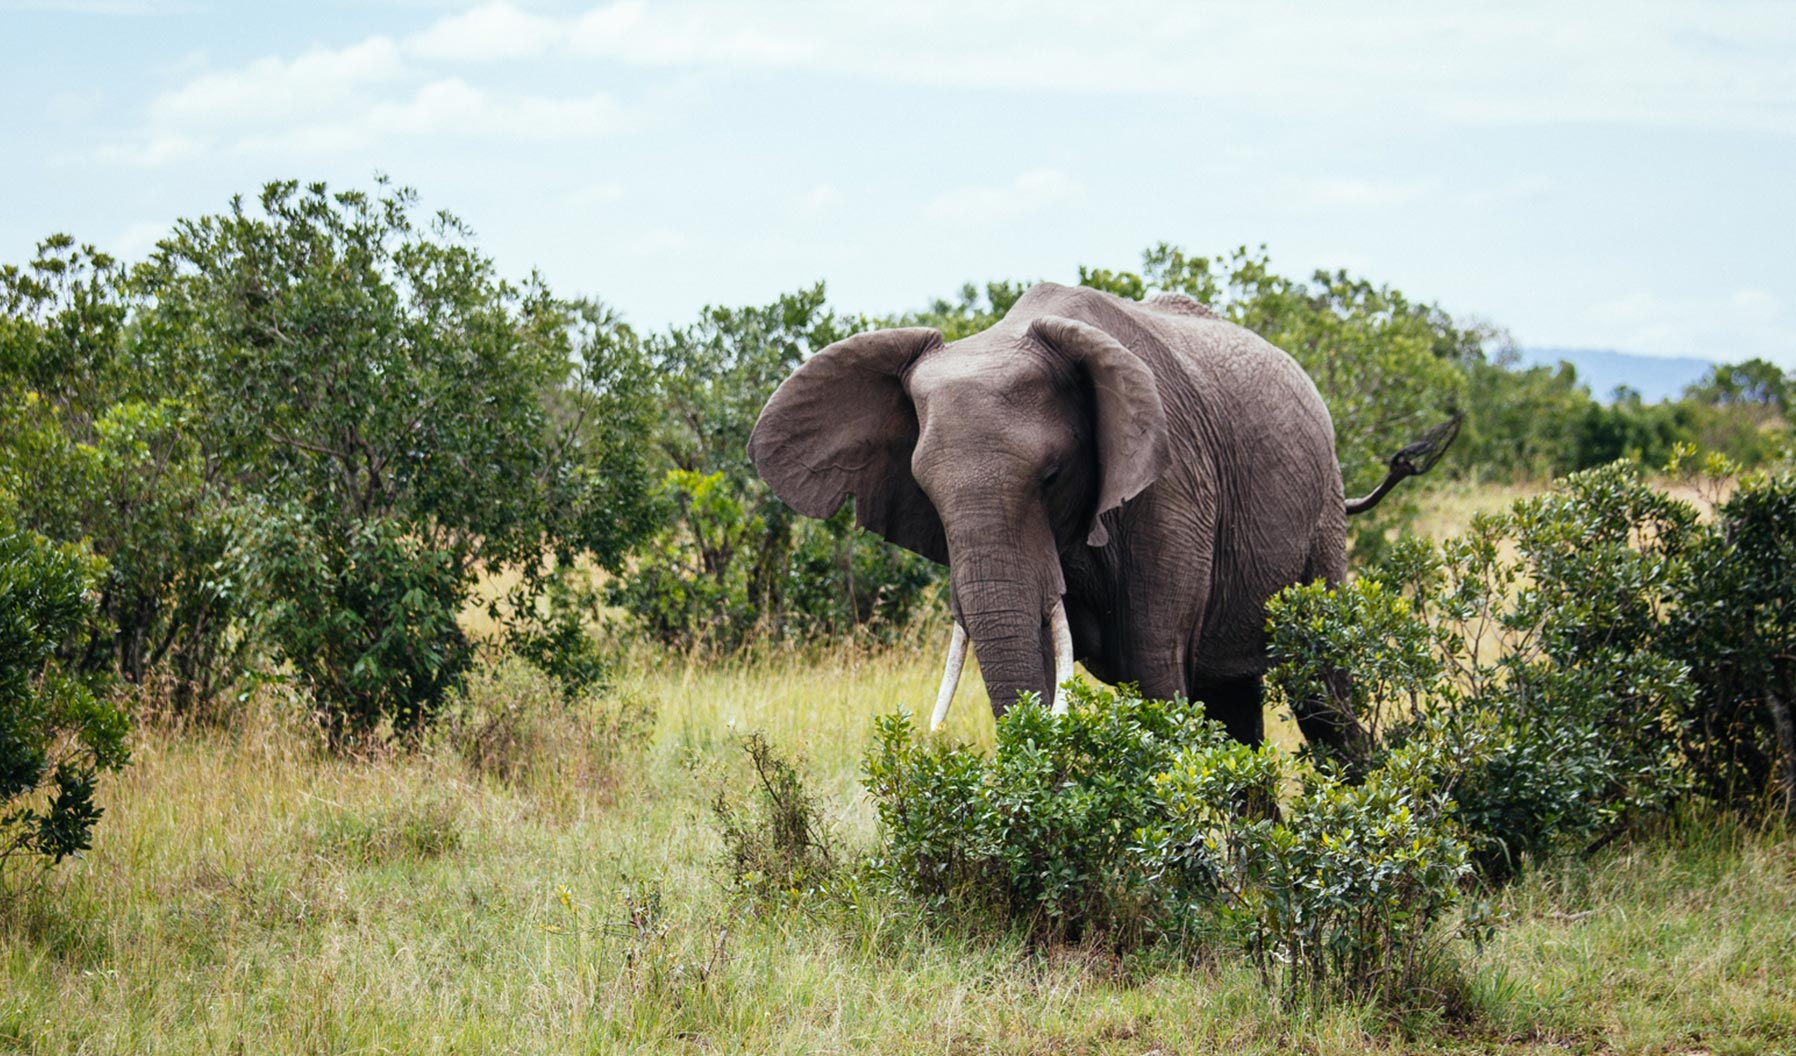 An elephant walking through bushes and trees